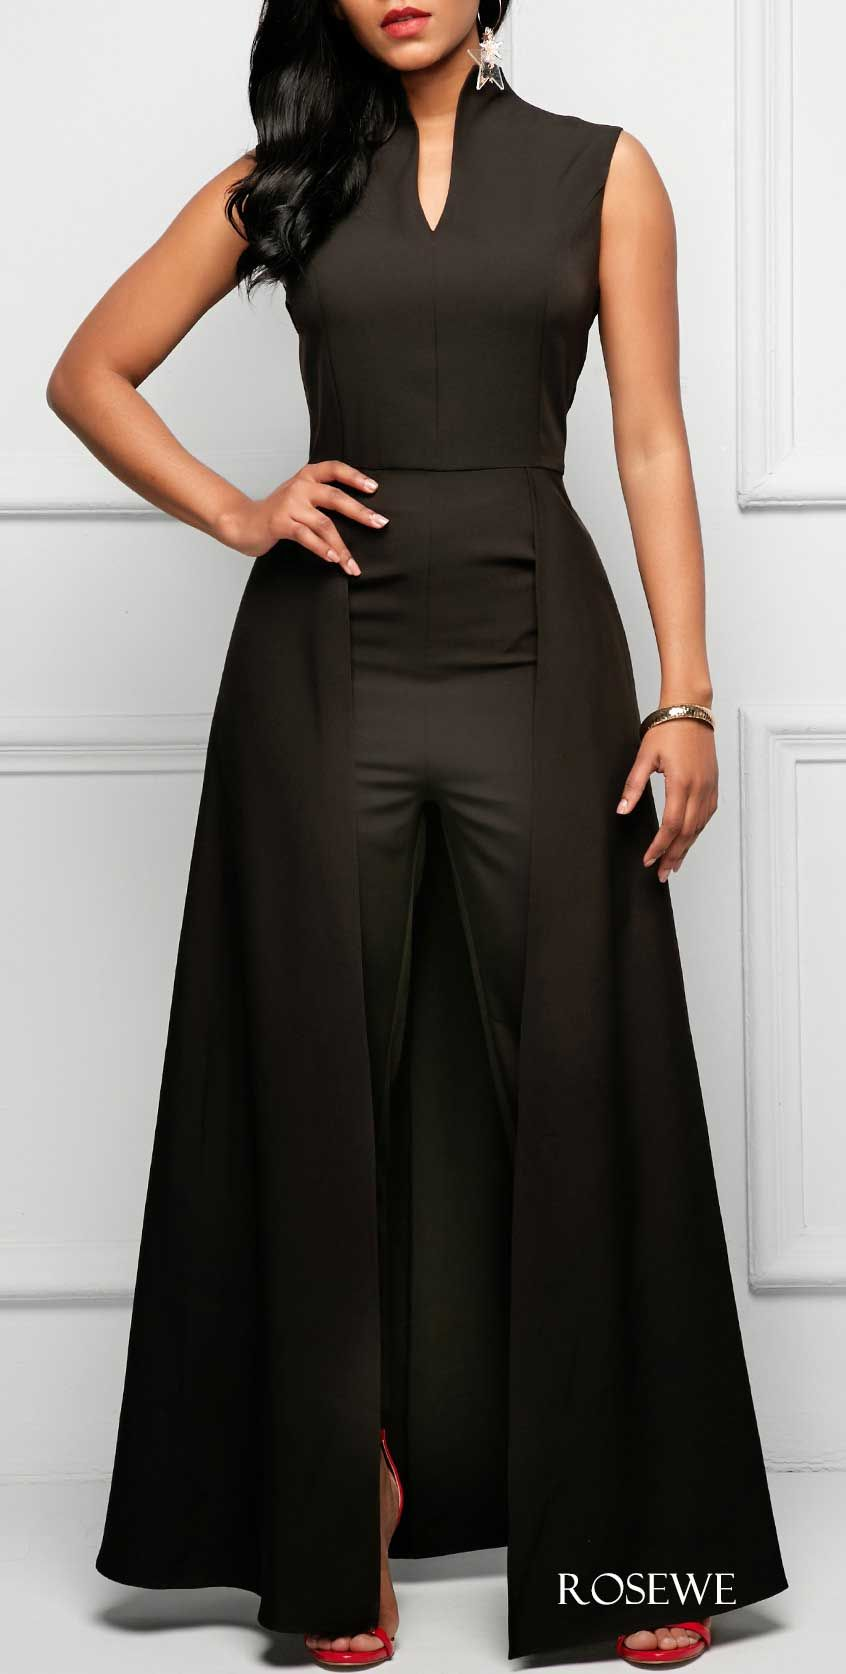 Rosewe Pant Suits